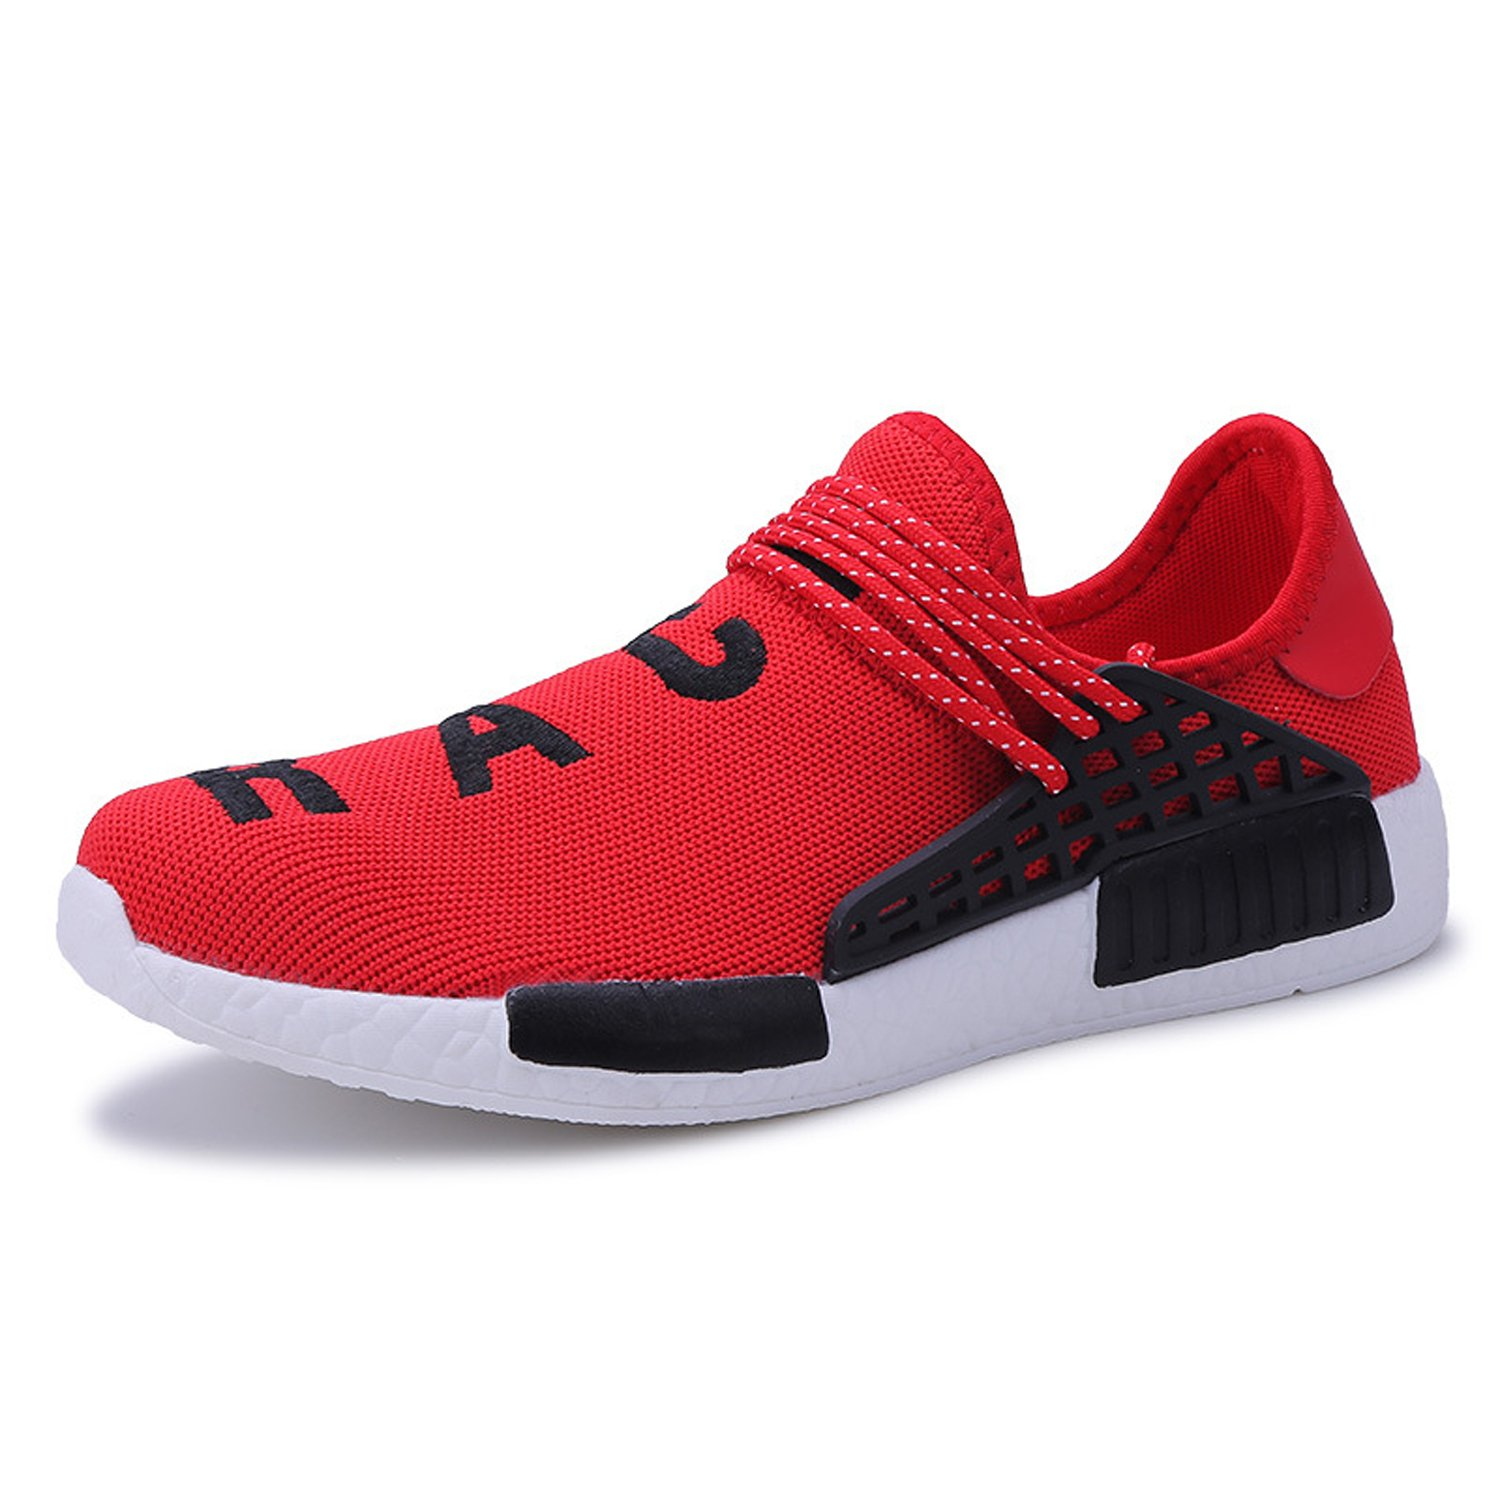 AI Aleng Mens Womens Unisex Lightweight Fashion Sneakers Breathable Lace-up Athletic Sports Shoes Human Race Casual Running Shoes B074RGVF16 Women 12 D(M) US /Men 11 D(M) US|Red